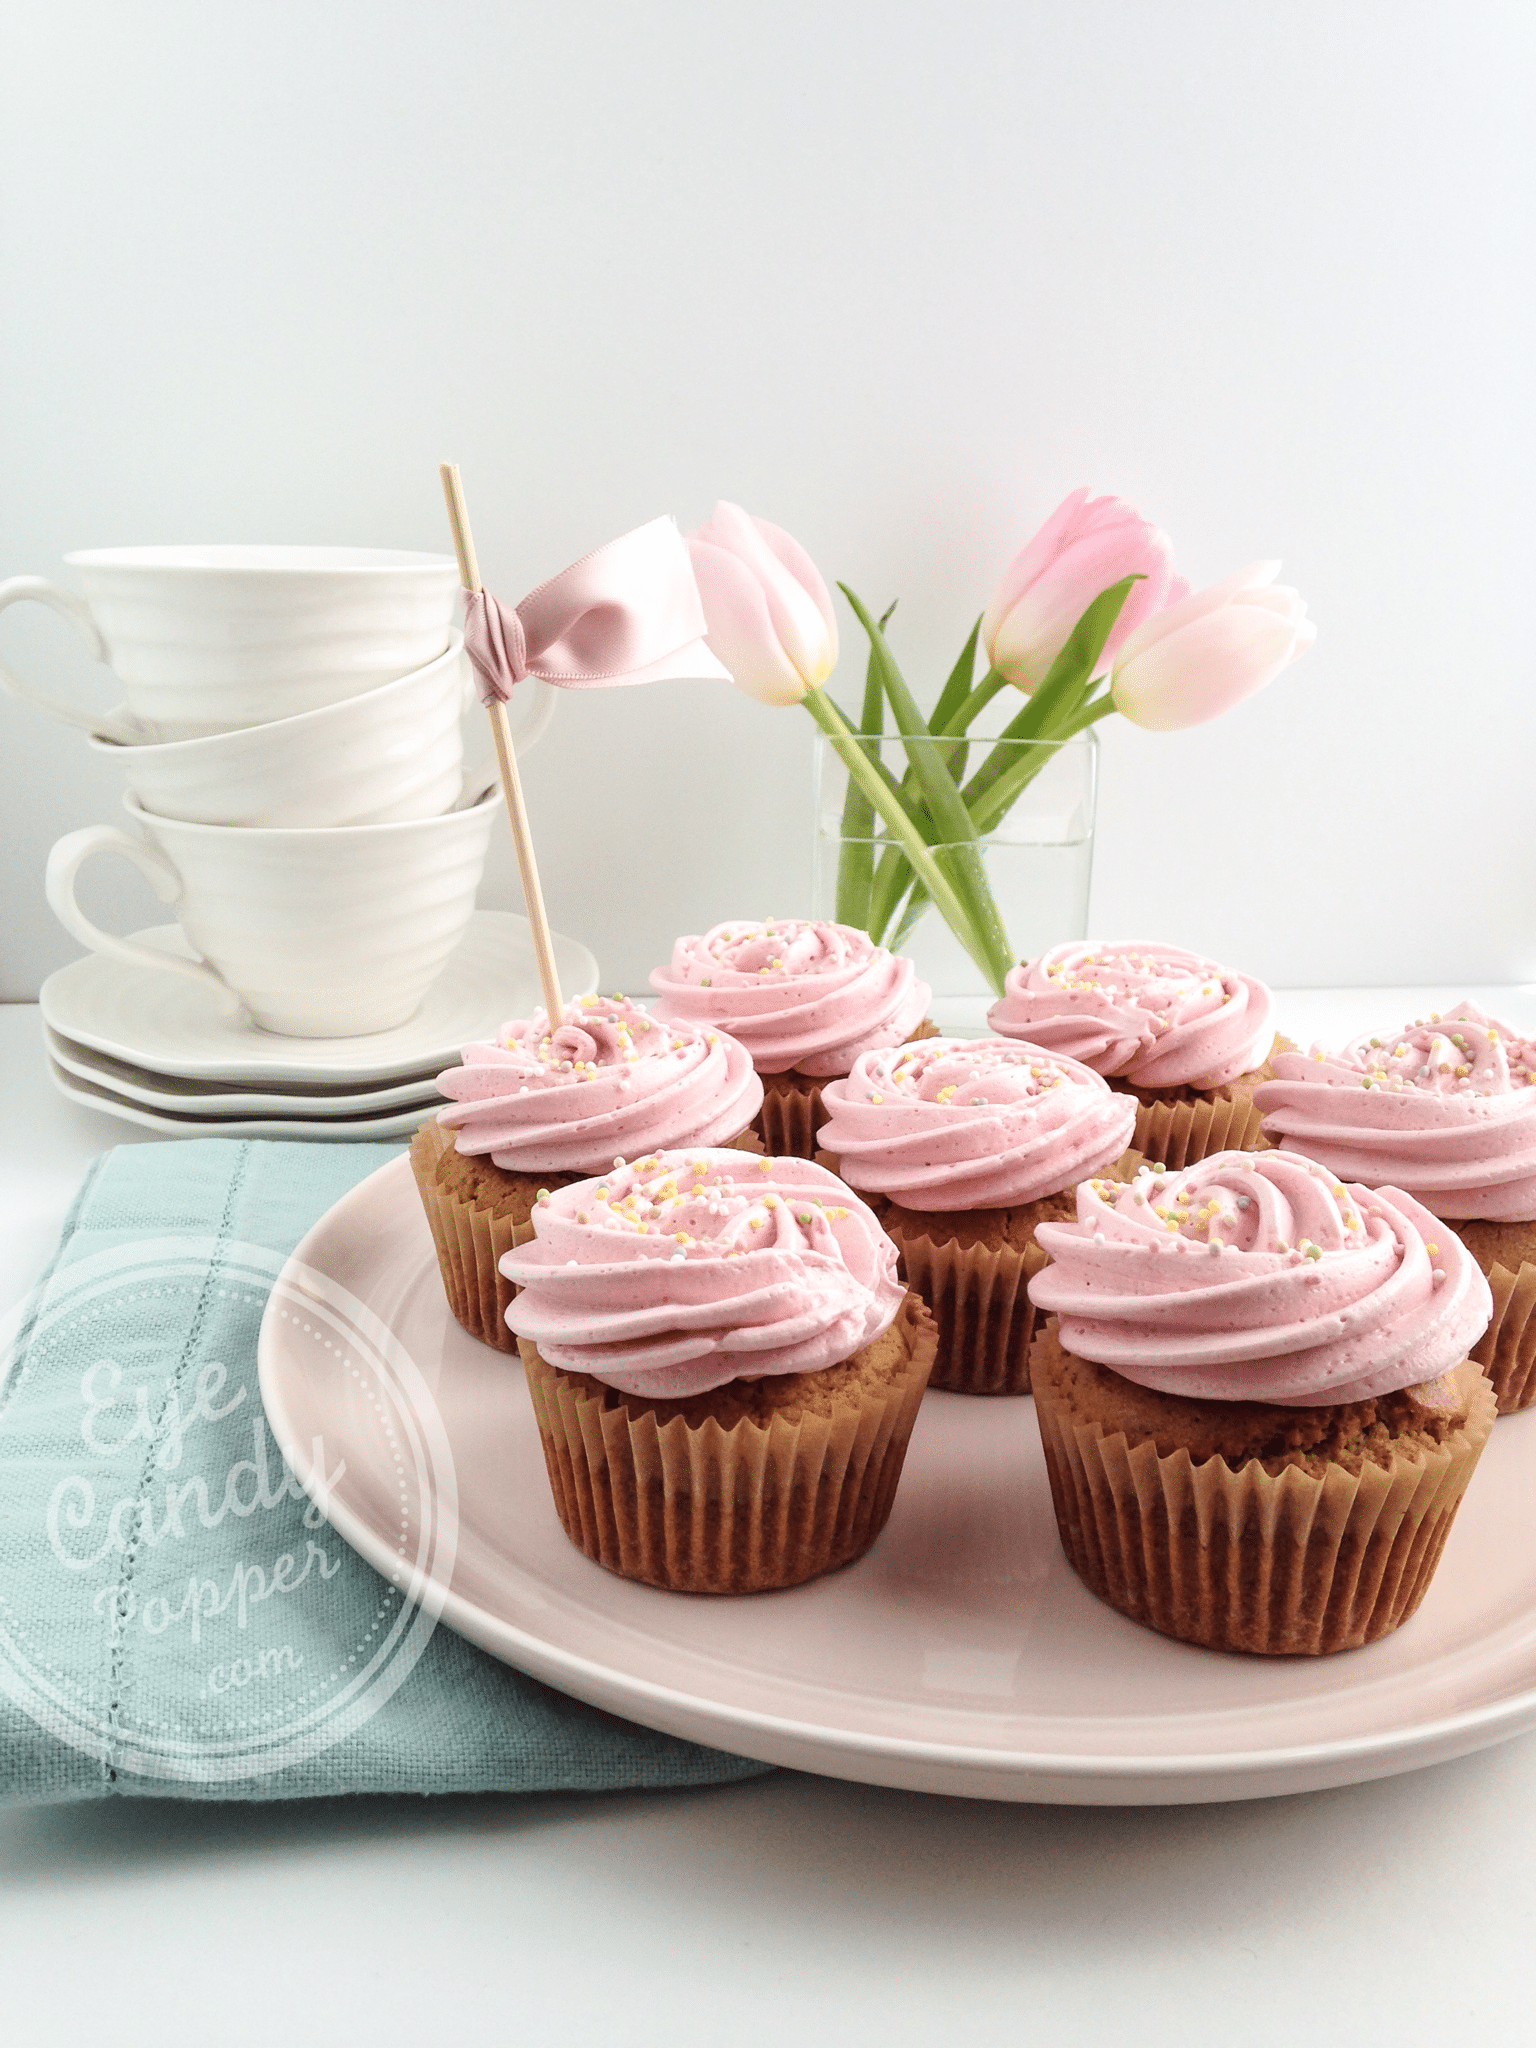 Truly healthy vanilla raspberry cupcakes without toxic dye